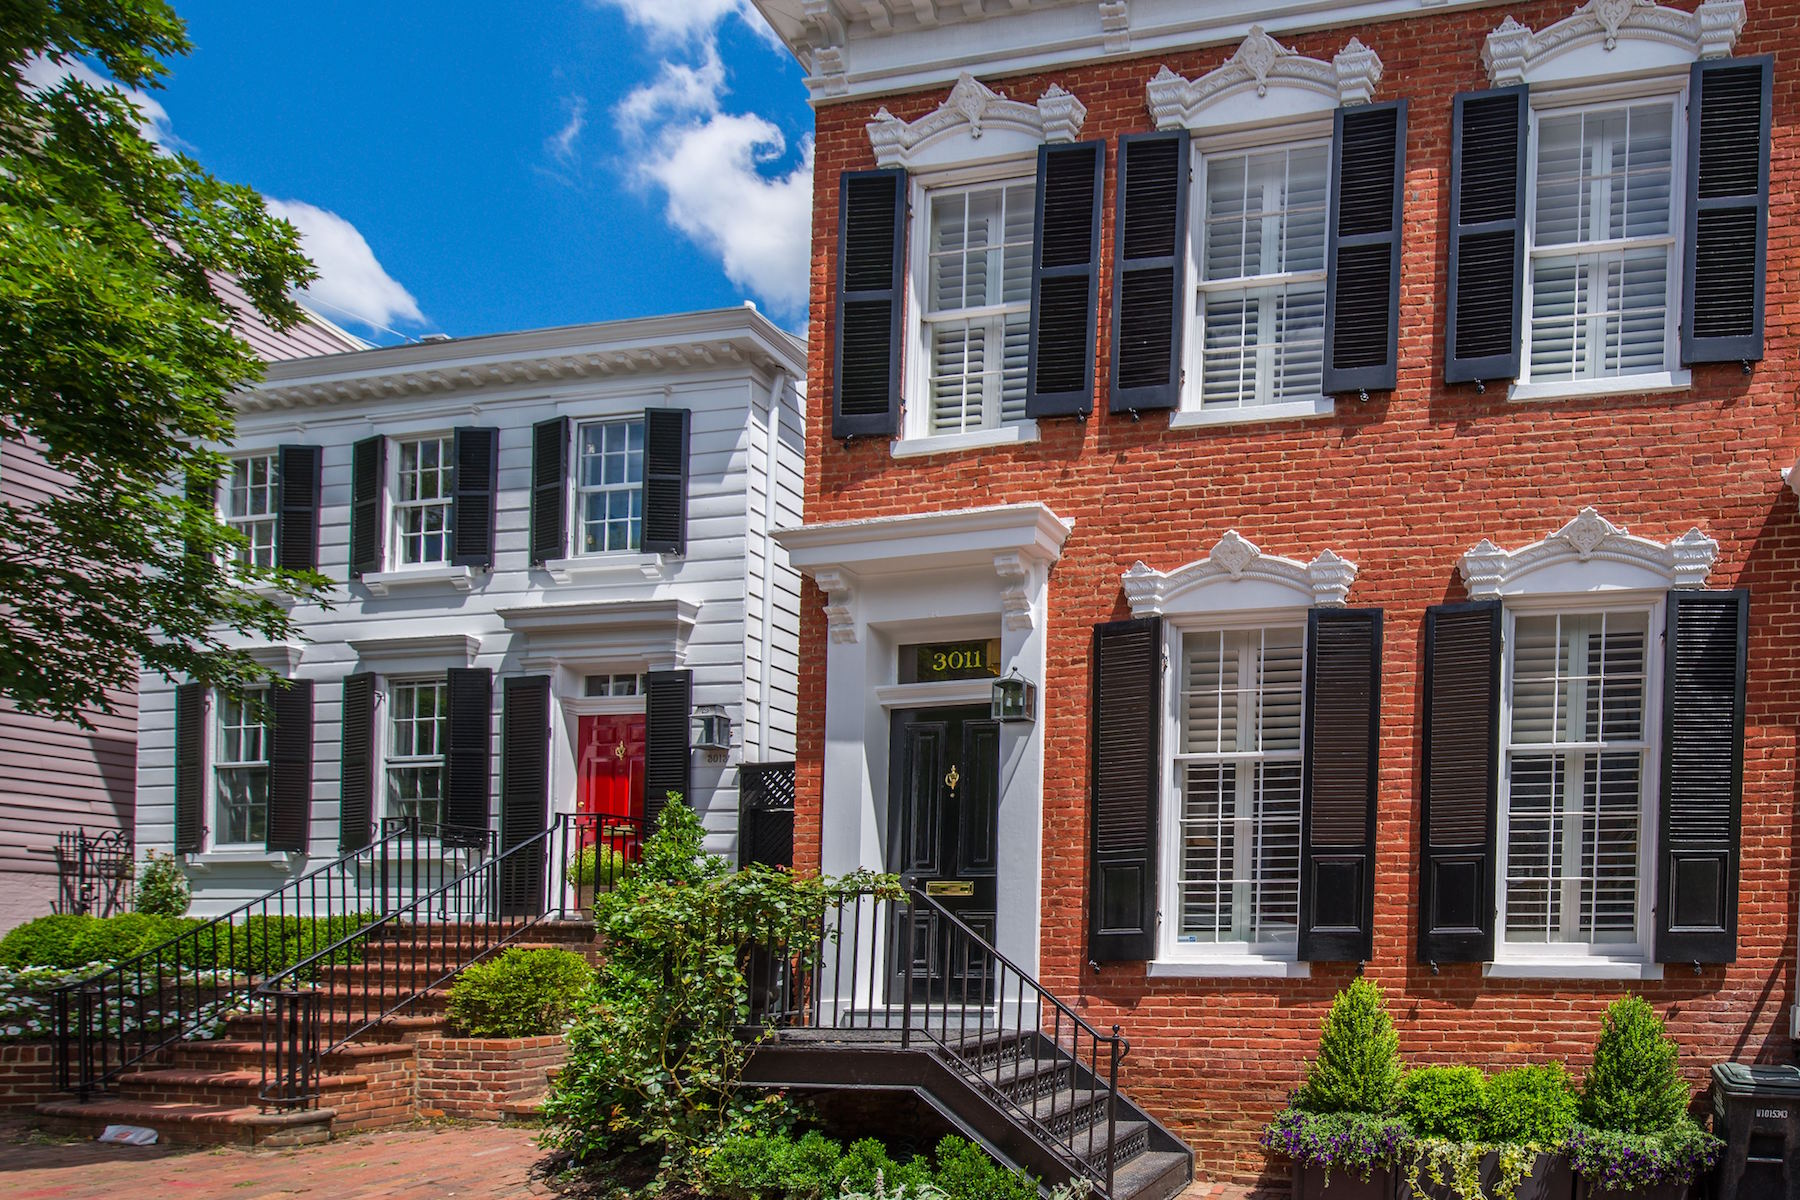 Townhouse for Sale at 3011 Dumbarton Street 3011 Dumbarton Street Nw Georgetown, Washington, District Of Columbia, 20007 United States